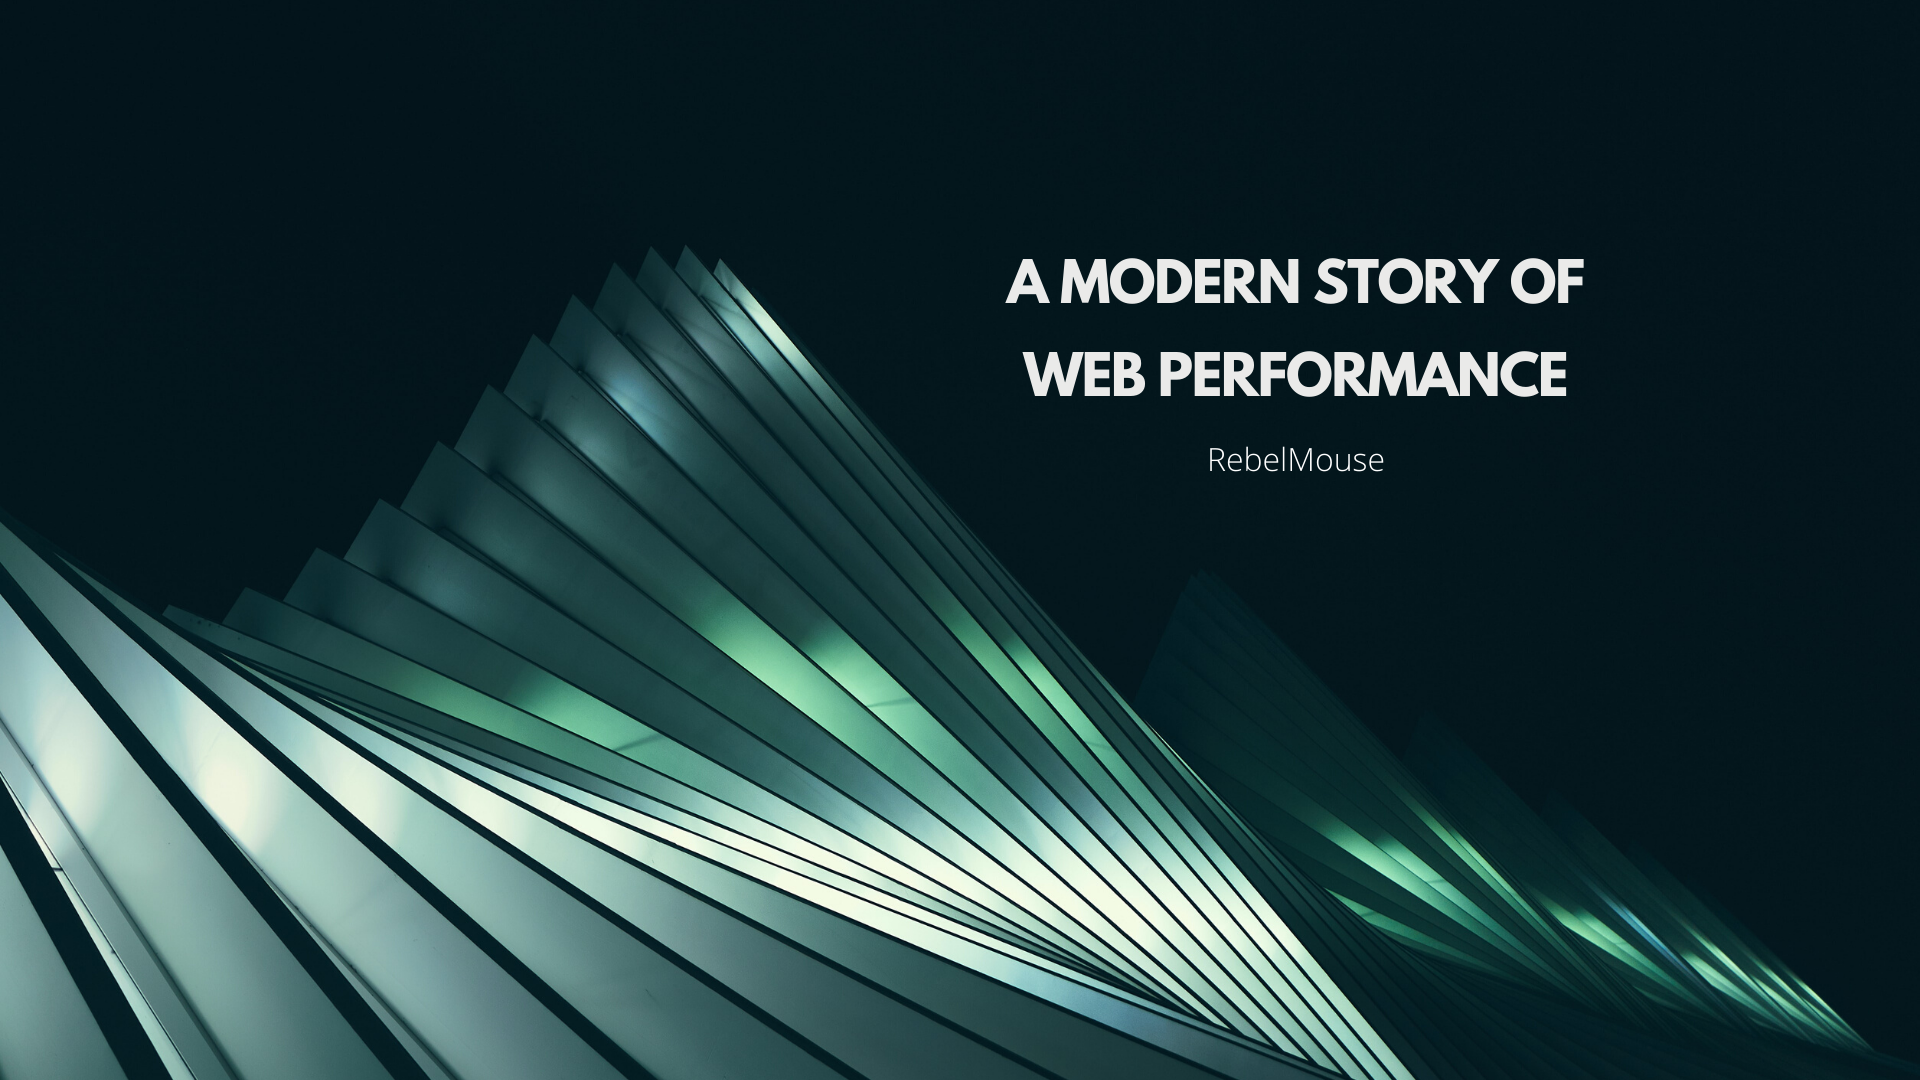 A Modern Story of Web Performance From RebelMouse Founder + CEO Andrea Breanna